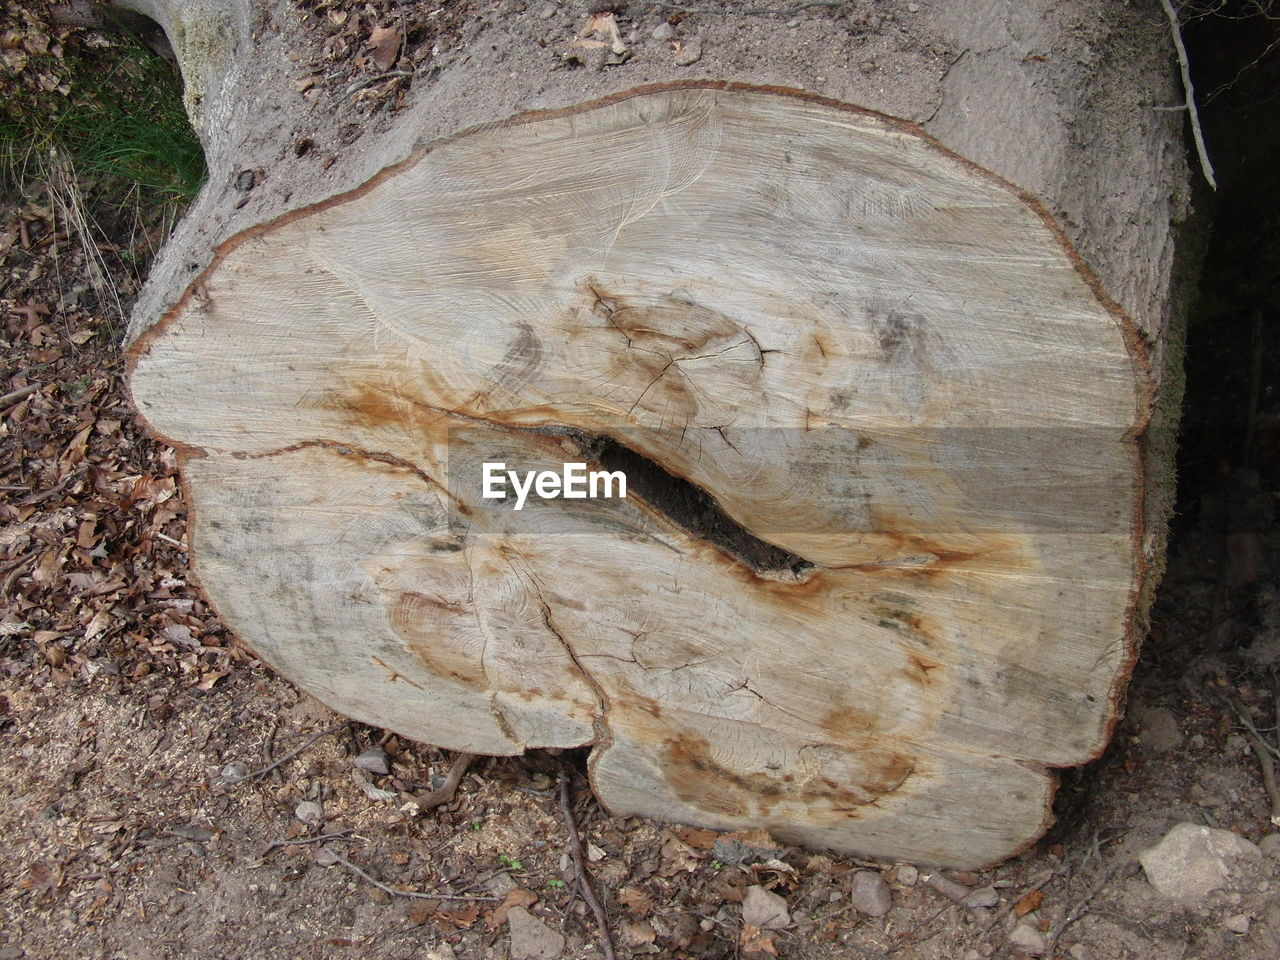 fossil, rock - object, nature, tree, no people, tree trunk, ancient, outdoors, day, forest, close-up